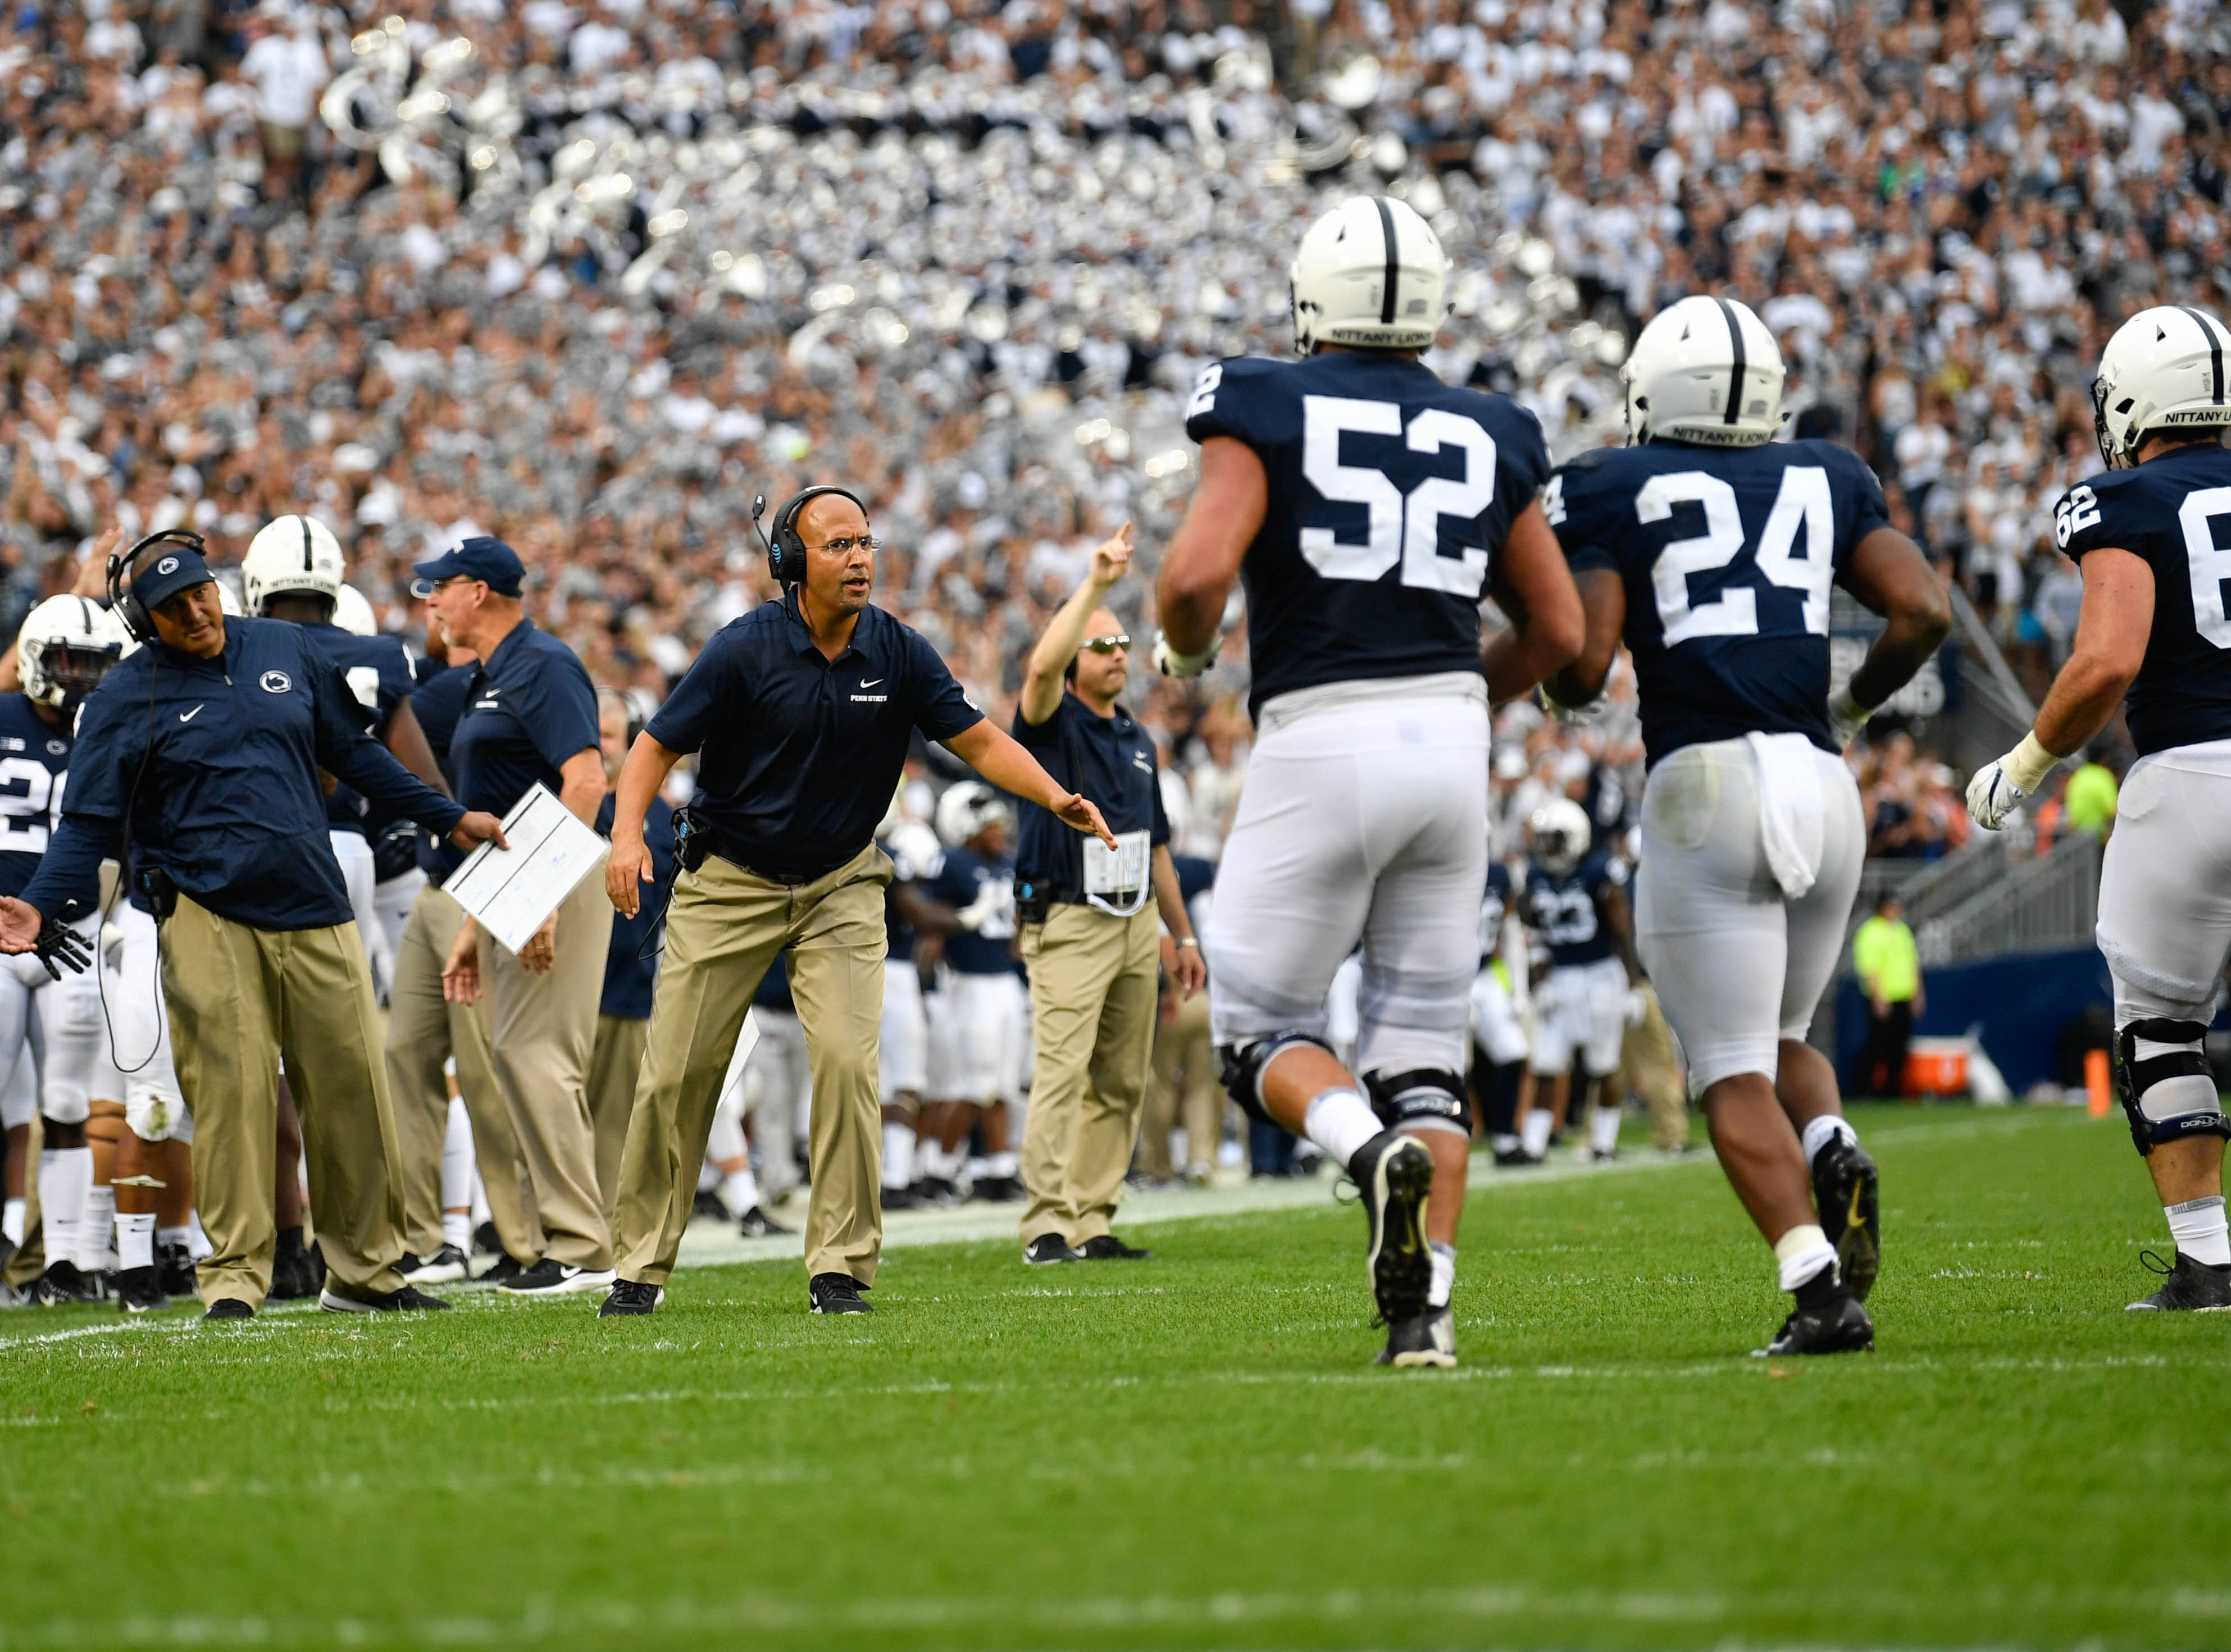 James Franklin coaches players as they come off the field during the Penn State opener against Appalachian State at Beaver Stadium on September 1, 2018.